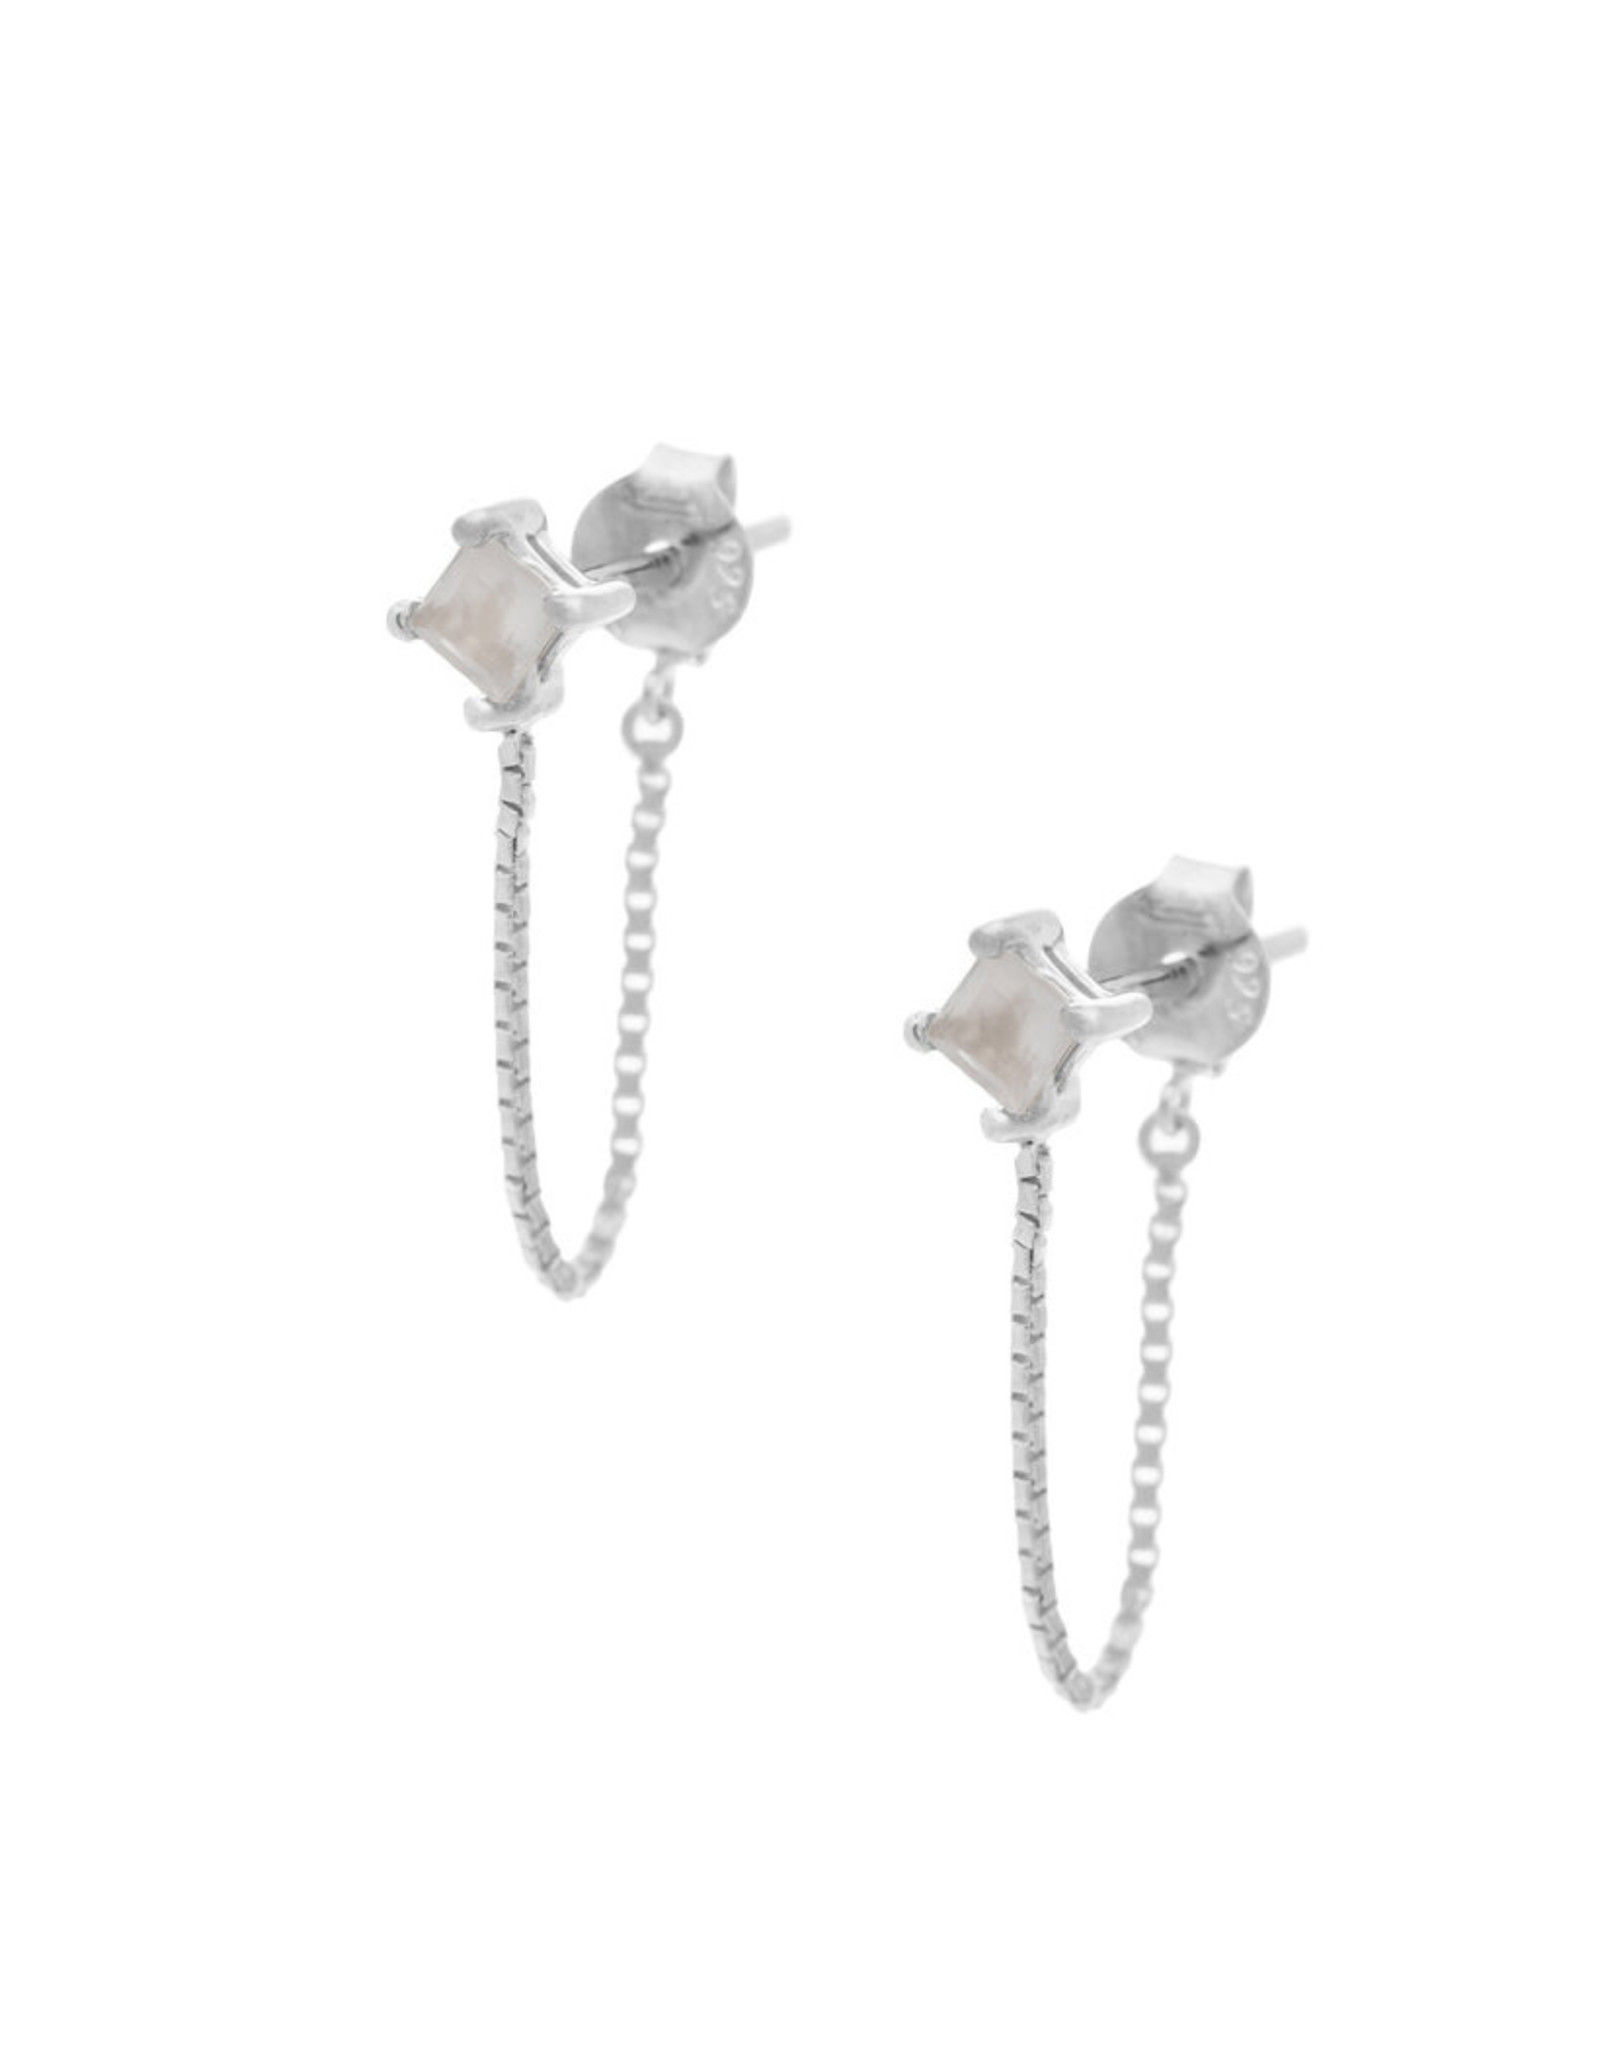 Sarah Mulder Jewelry Silver Alex Short Chain Studs - Rose Quartz